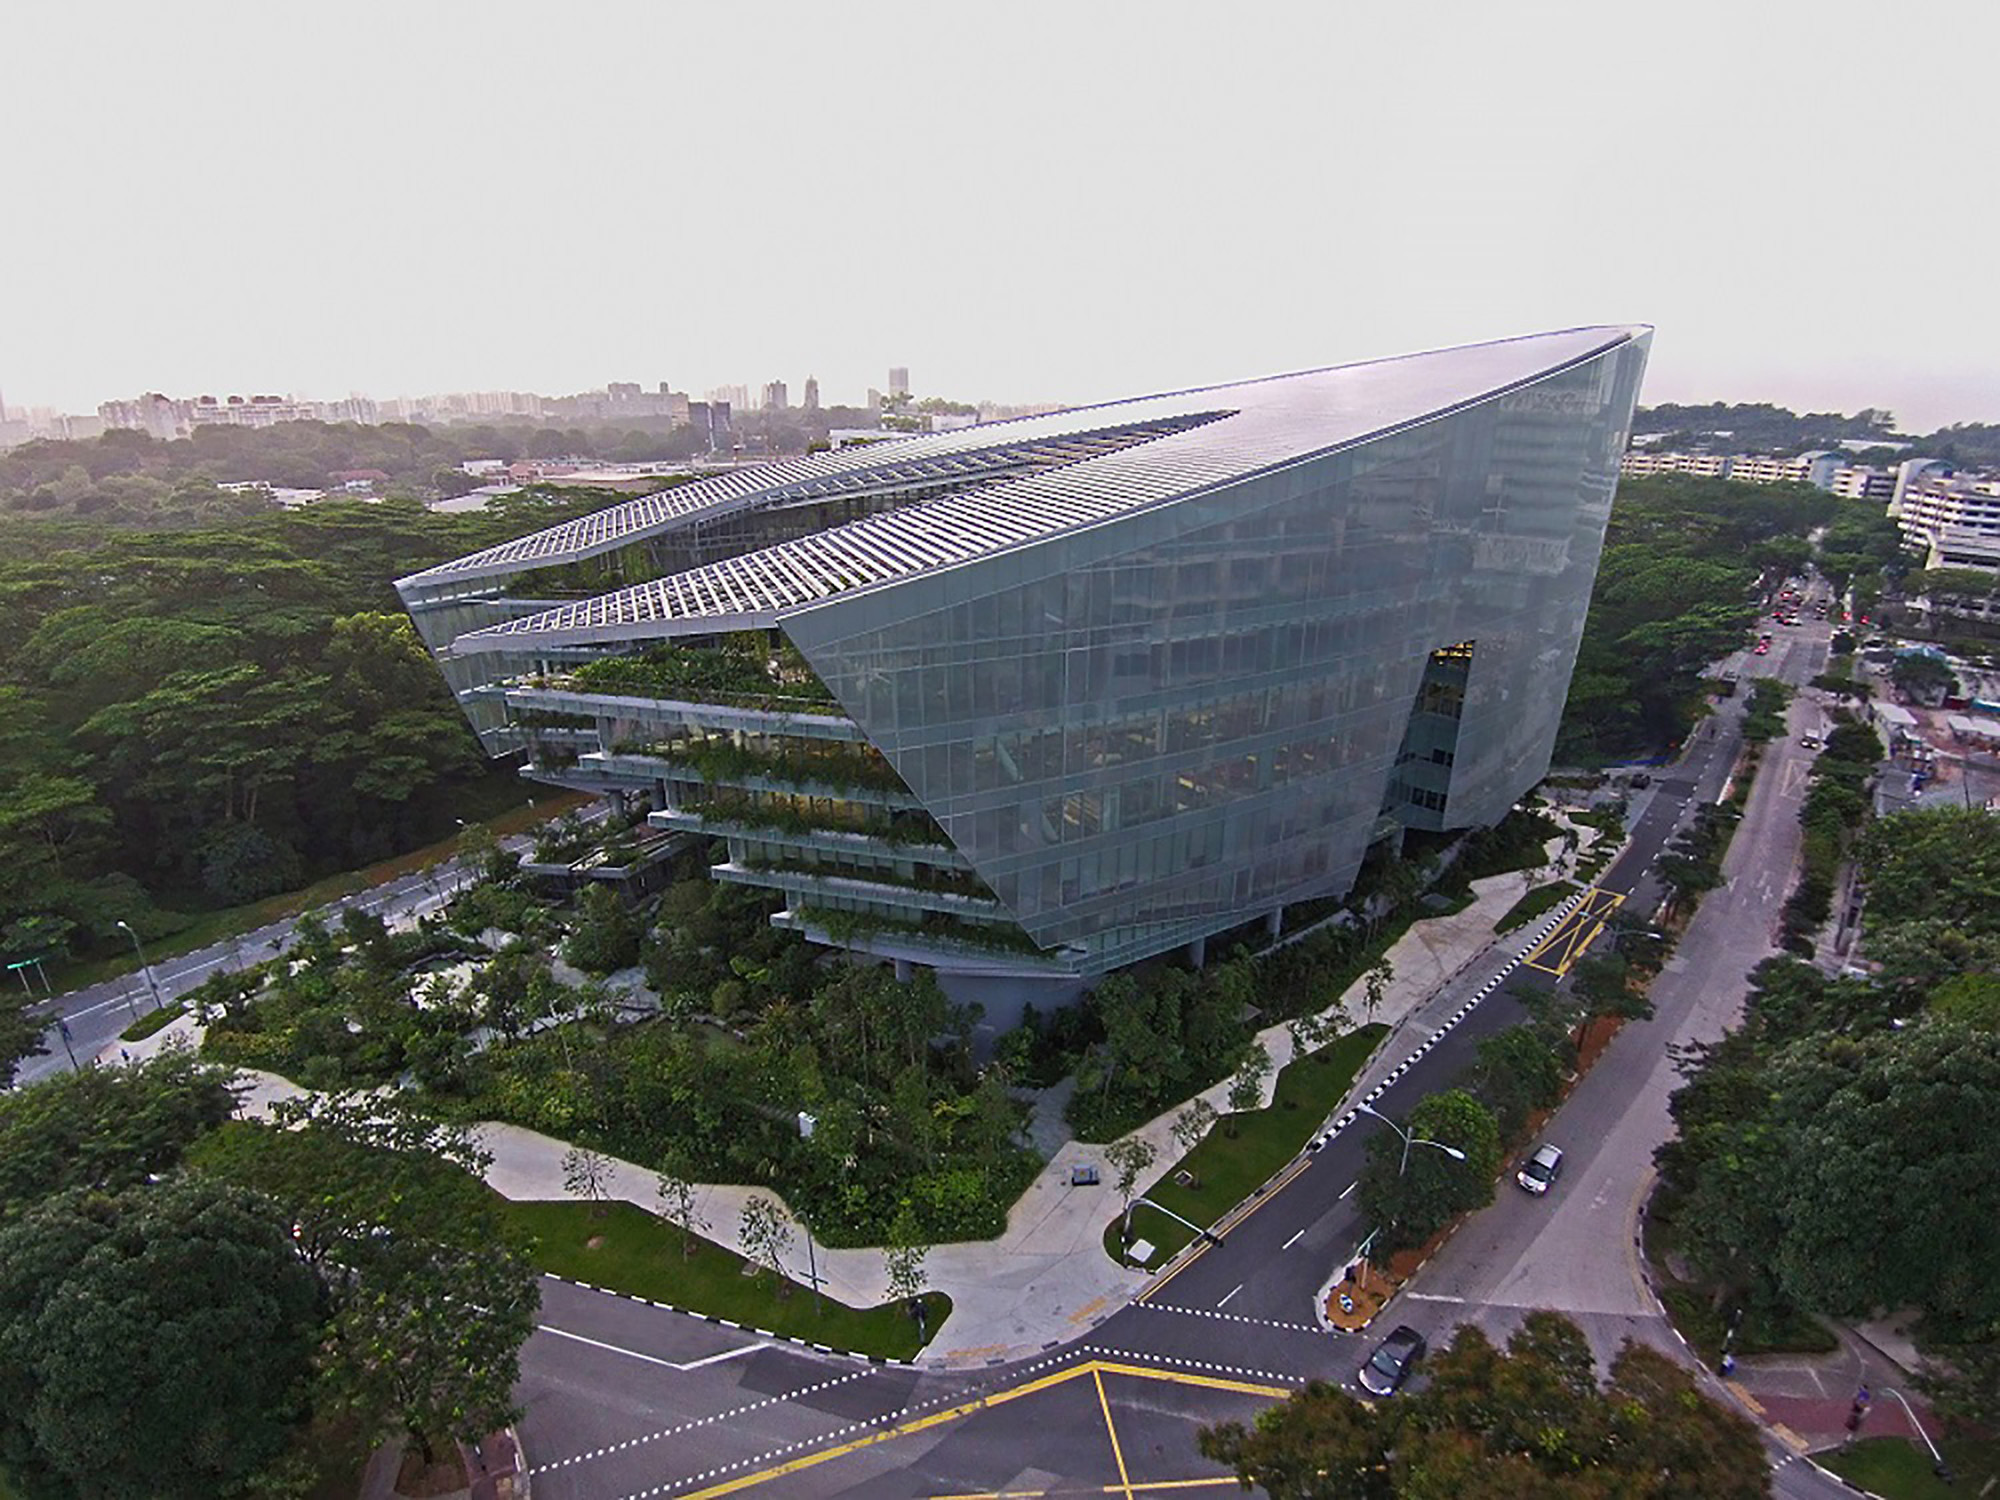 Sandcrawler / Andrew Bromberg of Aedas, Courtesy of Aedas